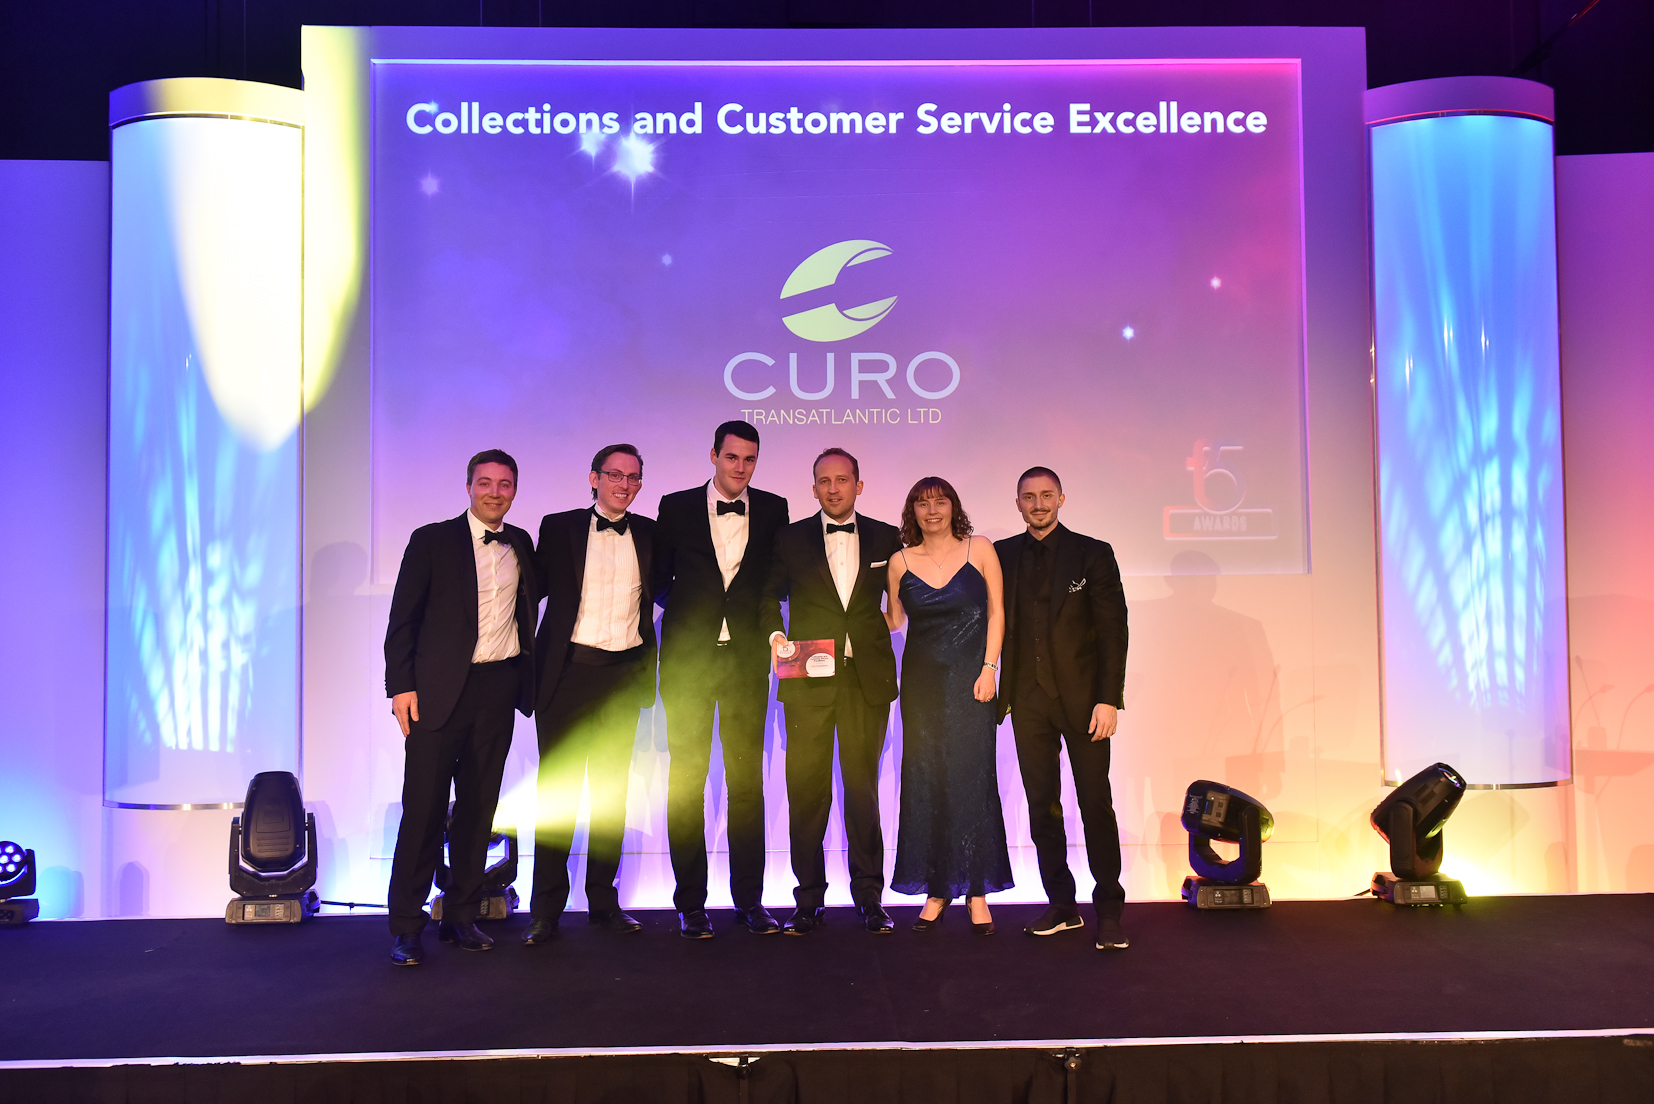 Winners F5 2017 - 6 Collections and Customer Service Excellence